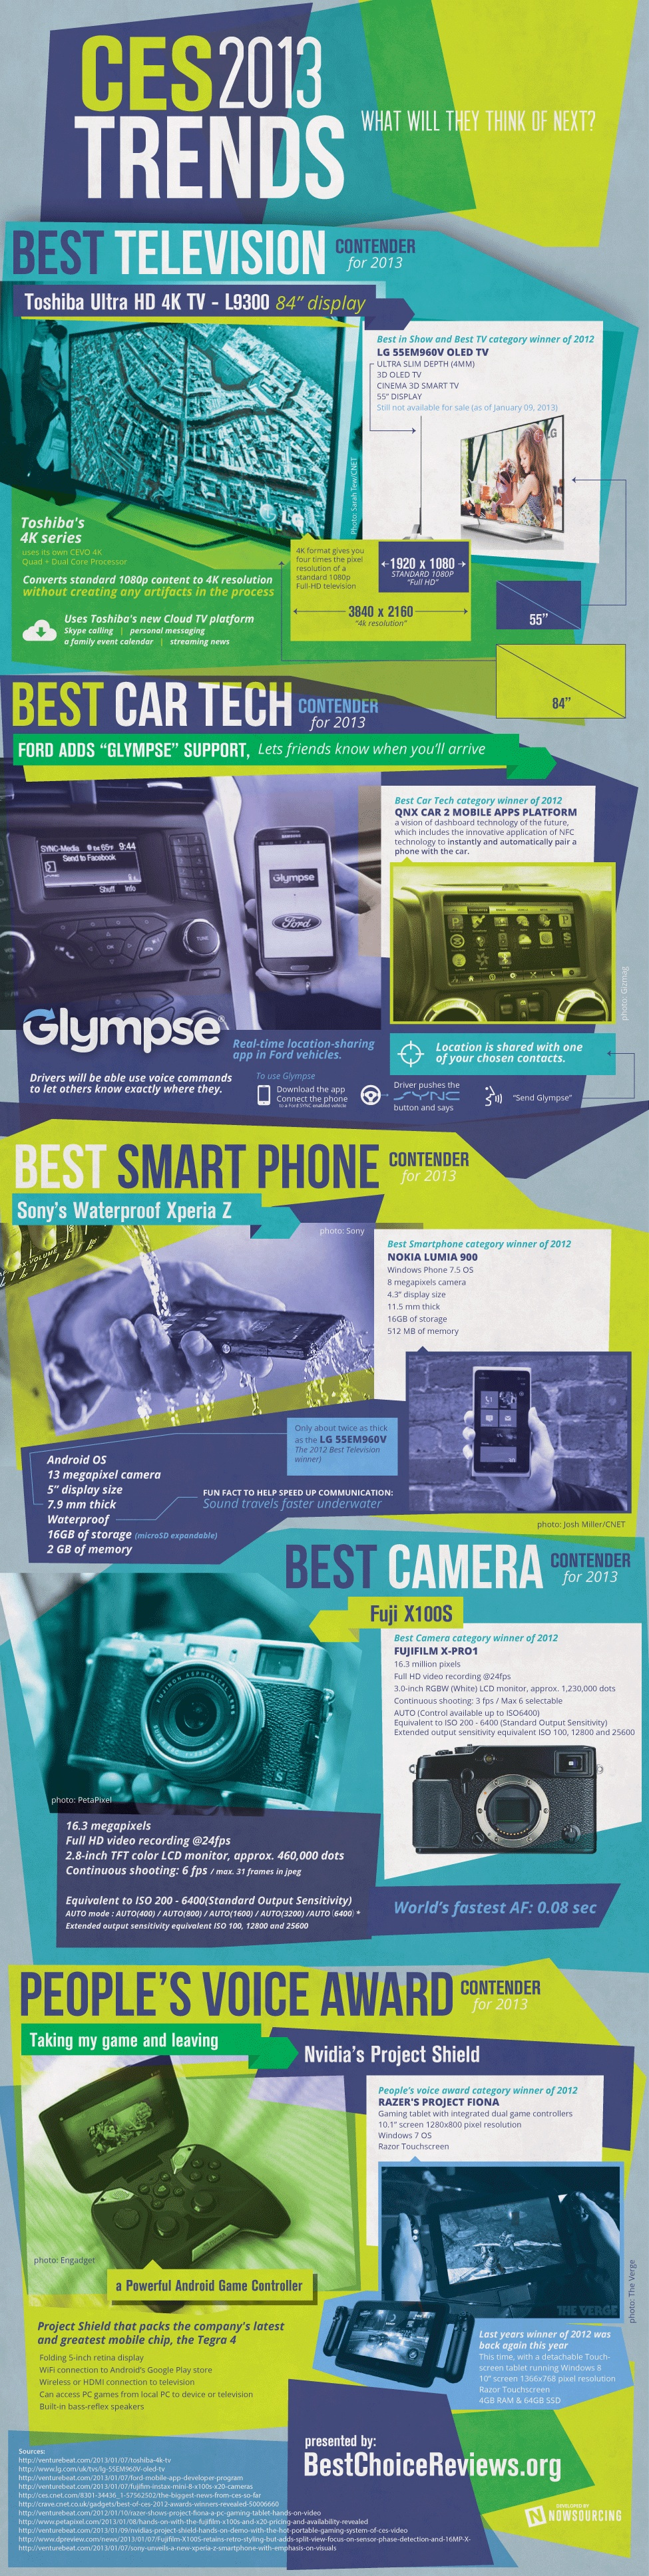 2013 CES Trends infographic